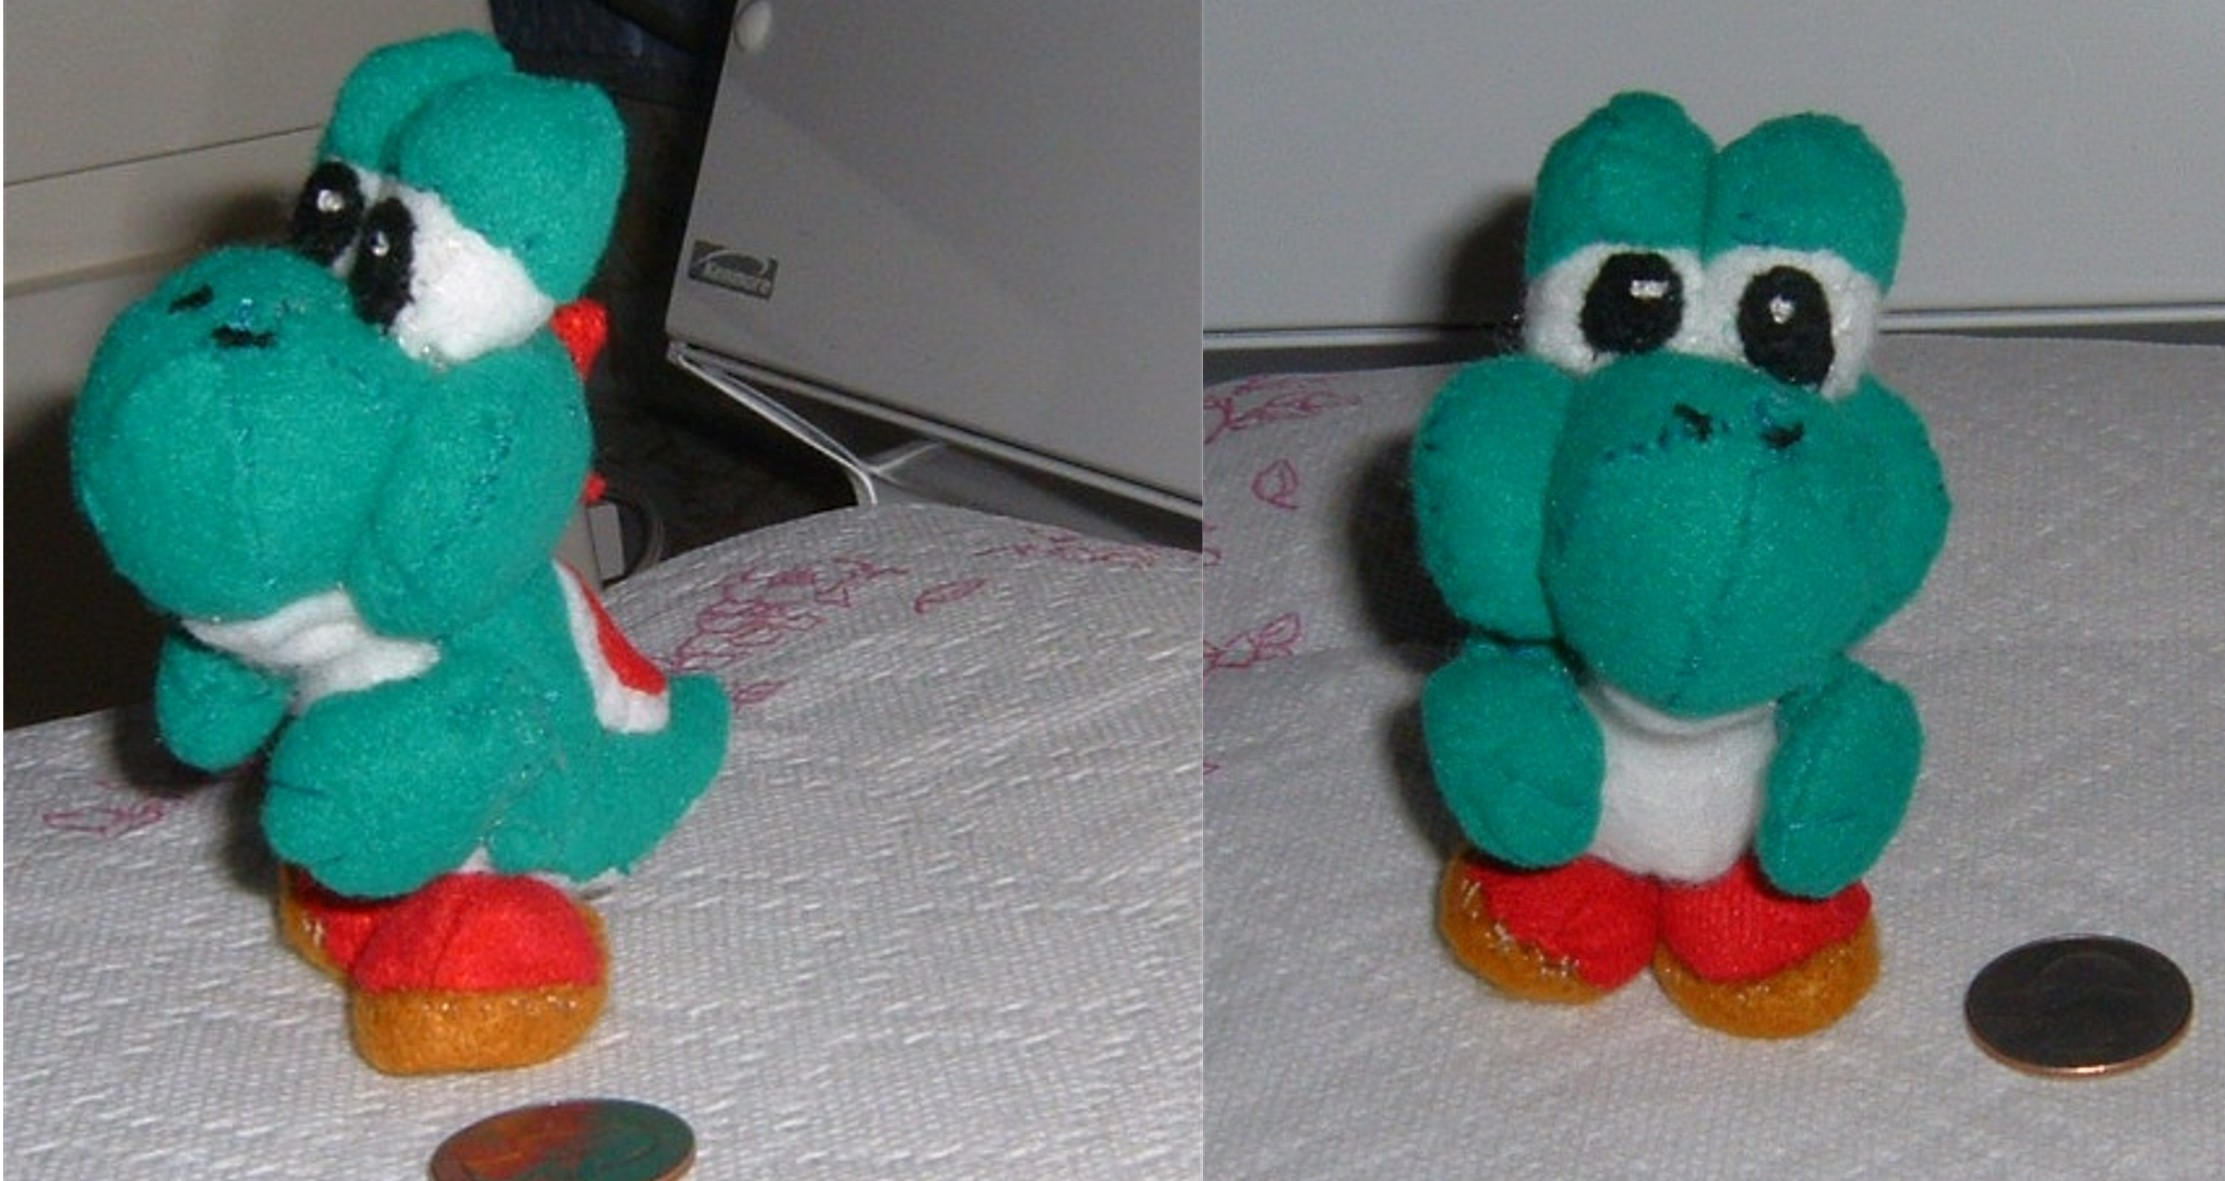 yoshi plush template - mini yoshi plush by intrepidthrough on deviantart